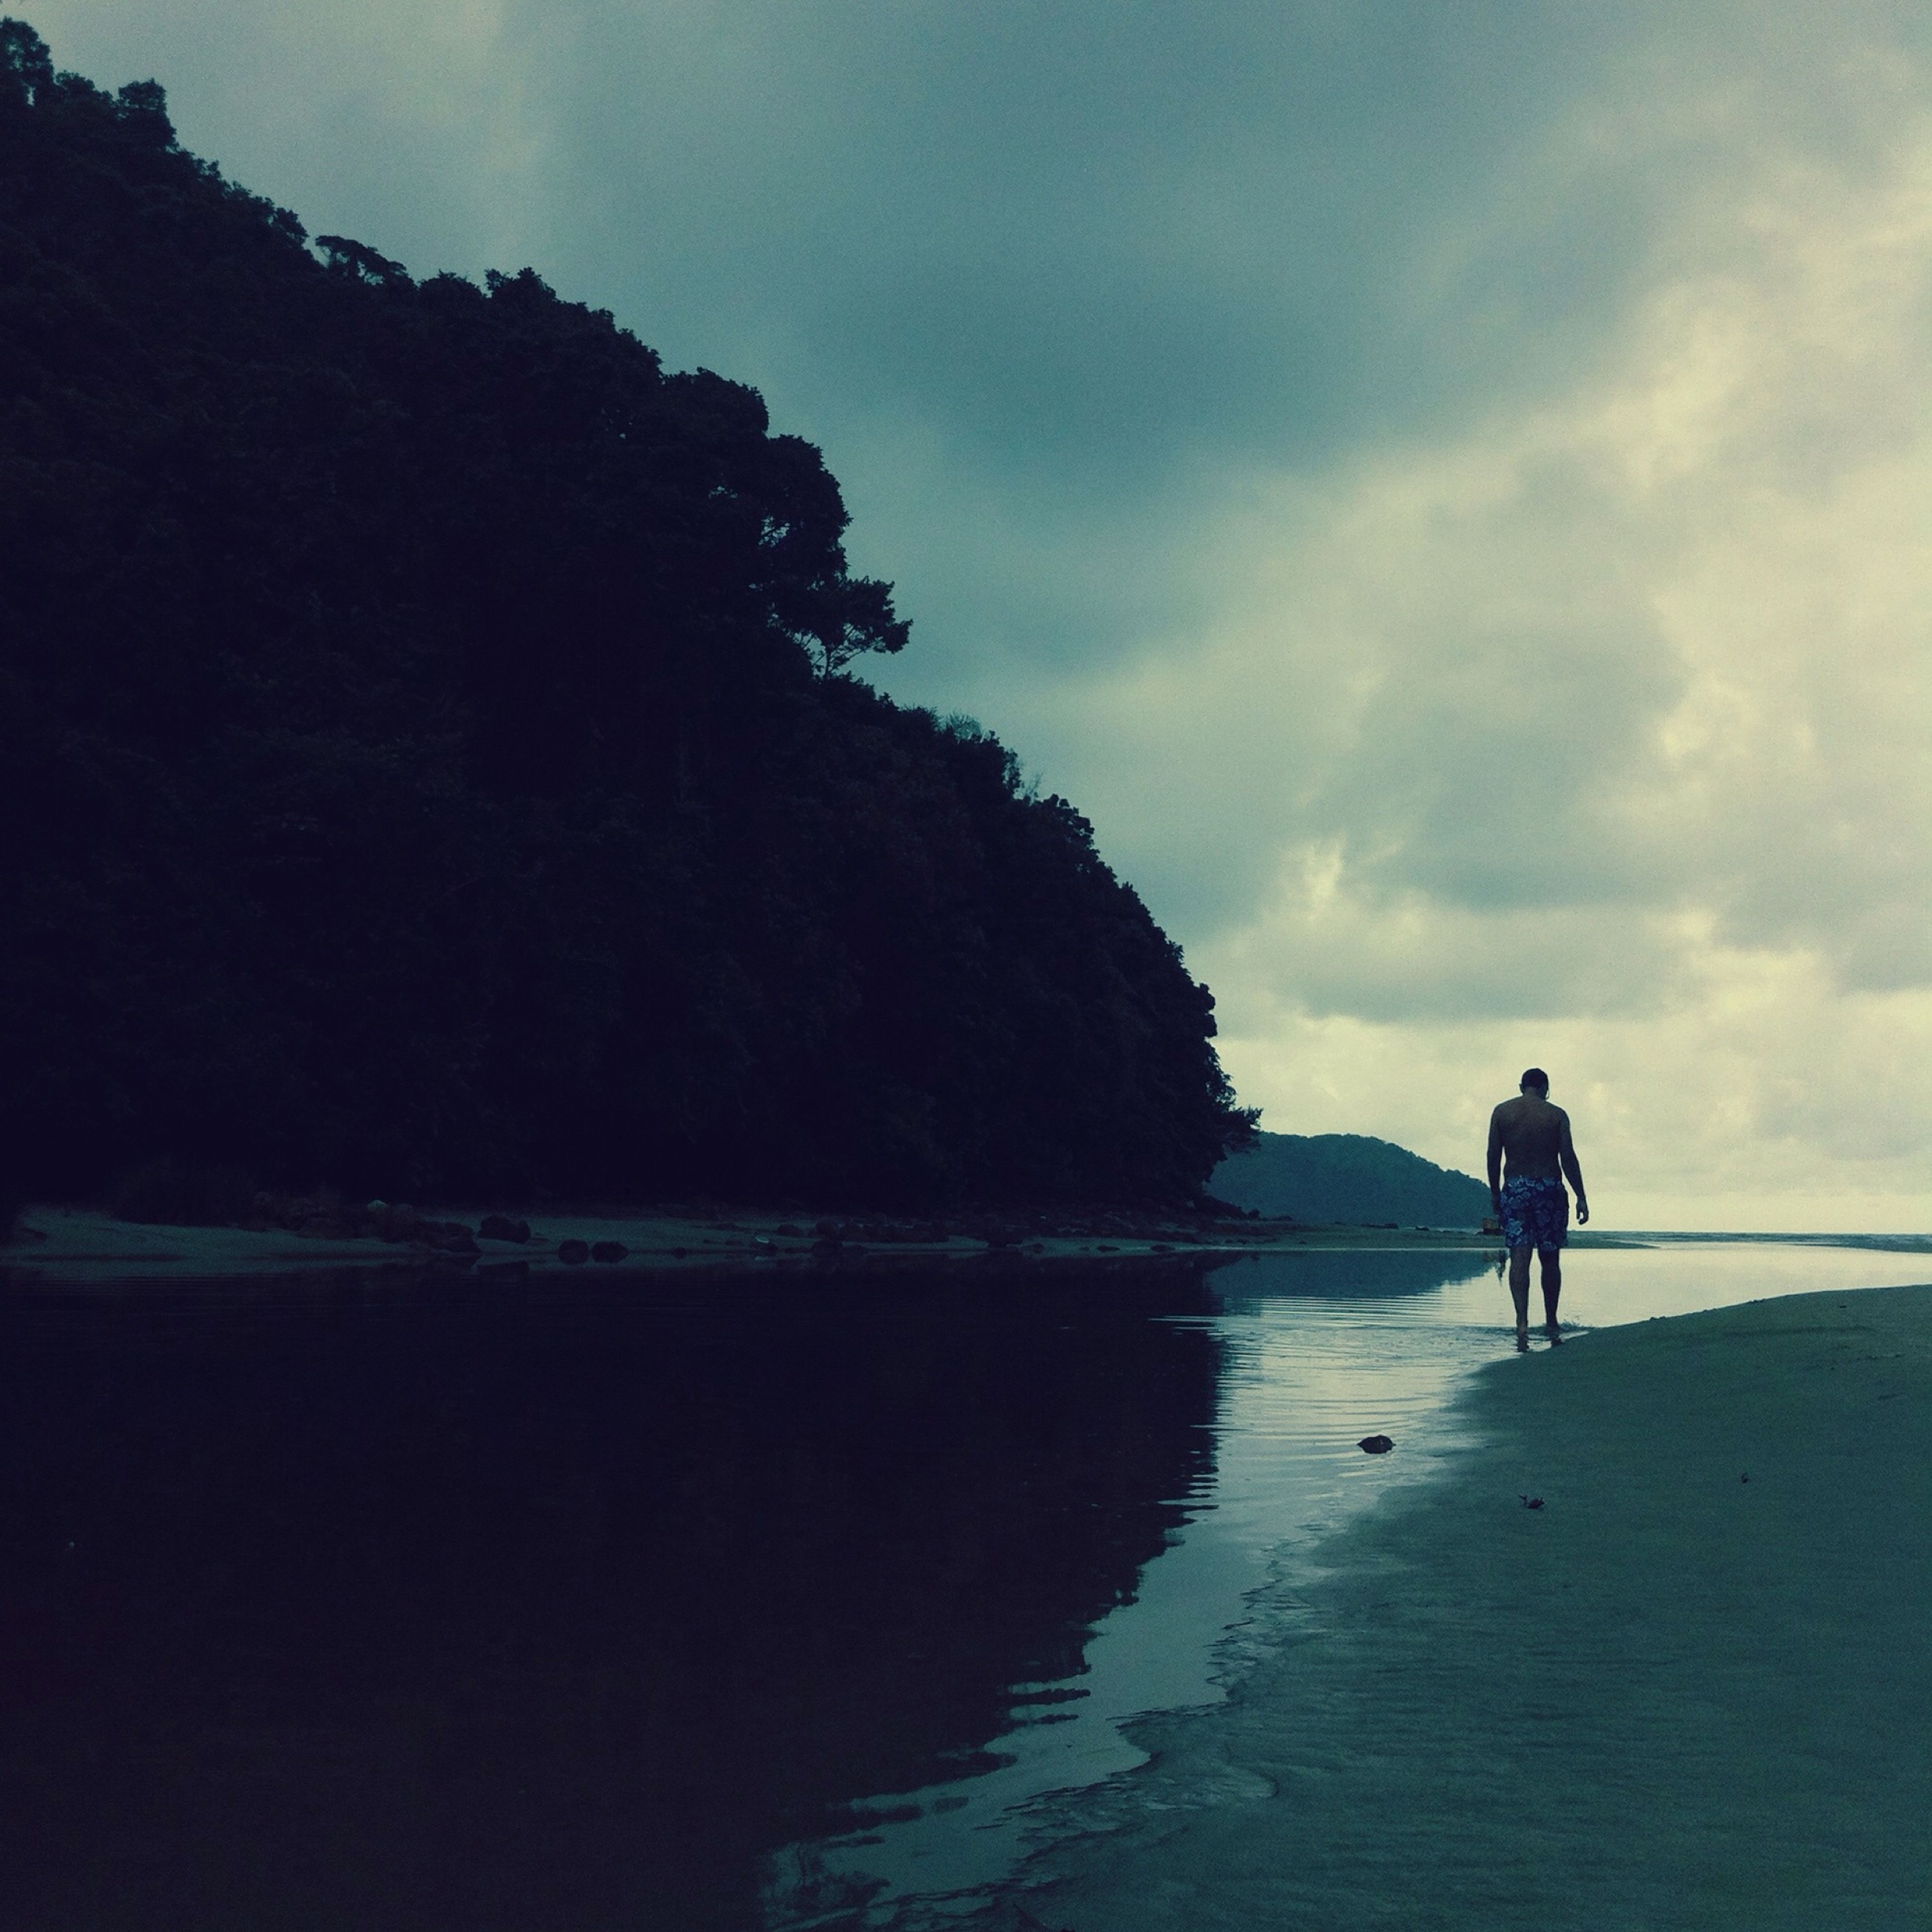 water, sea, beach, sky, full length, leisure activity, lifestyles, shore, silhouette, men, tranquility, rear view, tranquil scene, beauty in nature, standing, scenics, walking, horizon over water